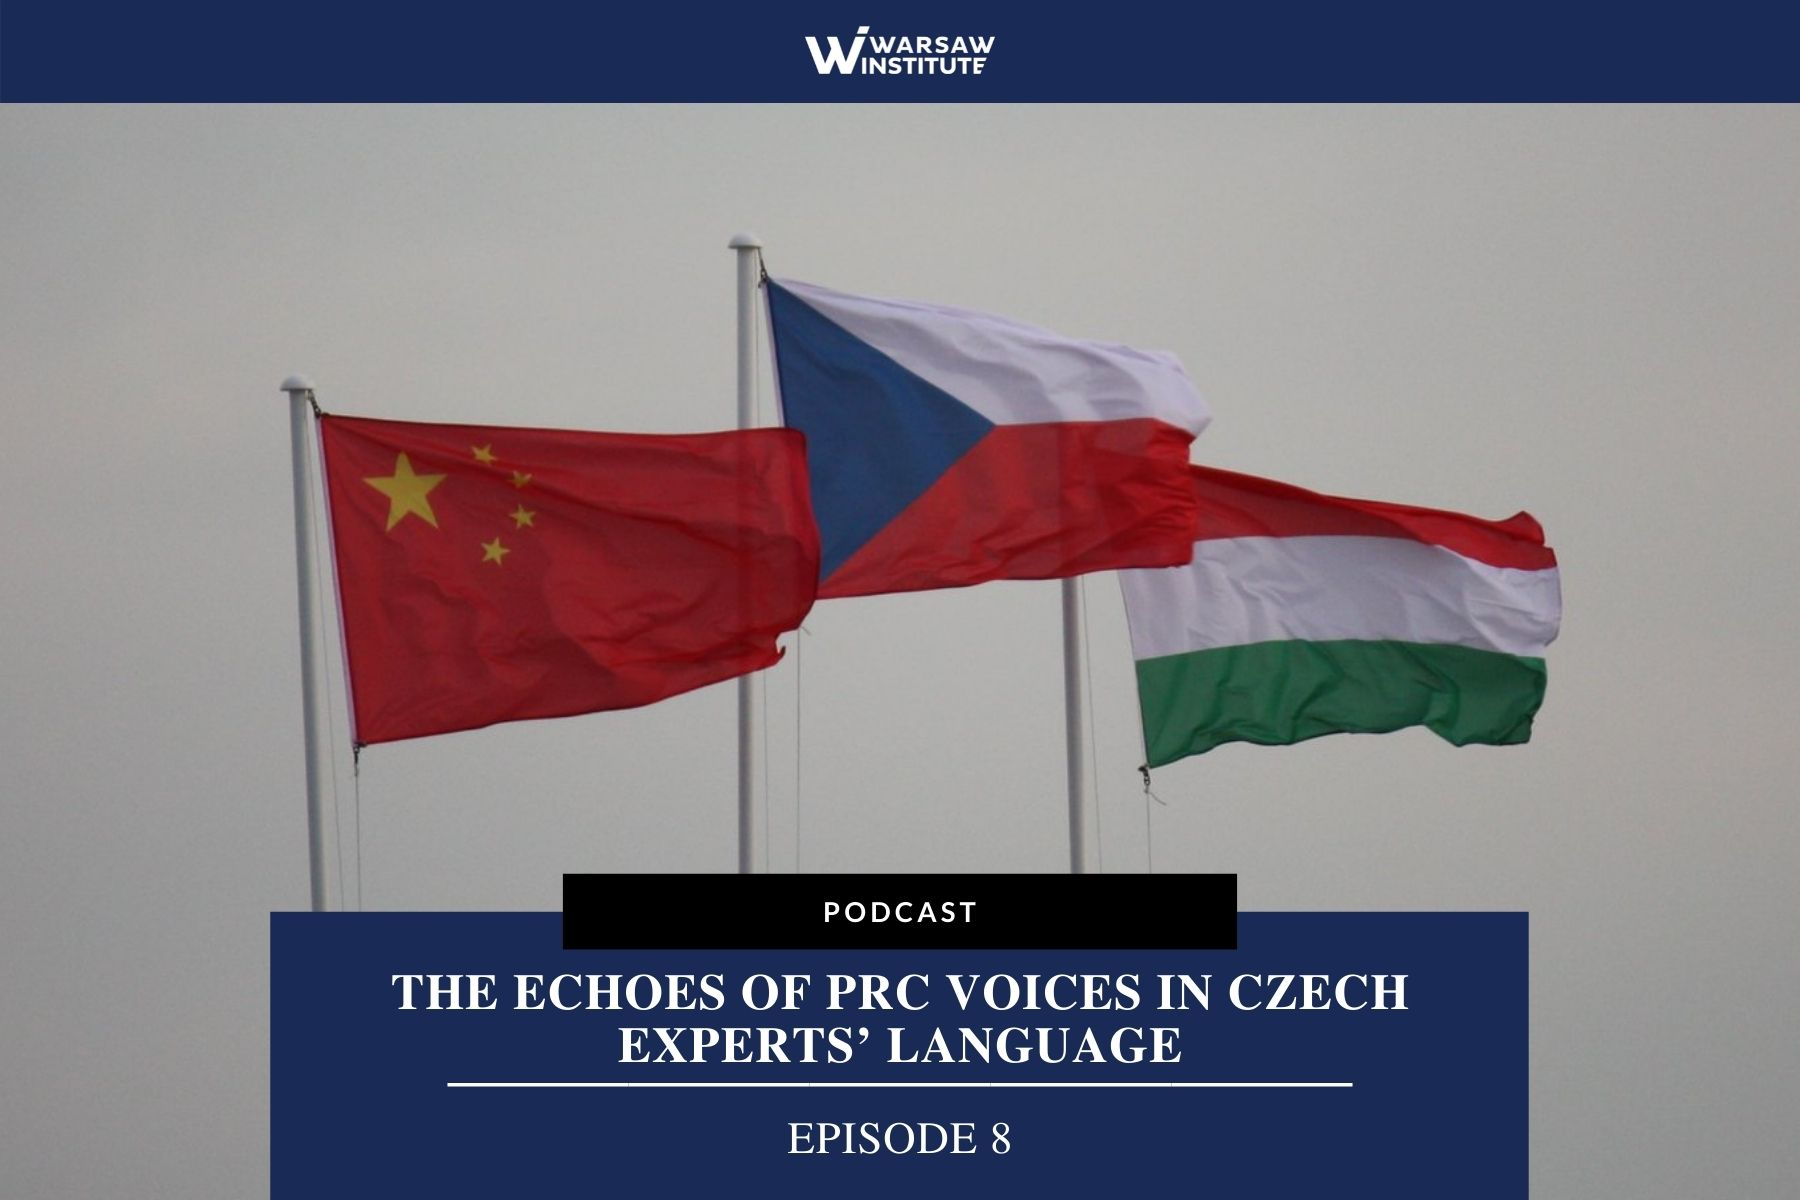 The echoes of PRC voices in Czech experts' language – Podcast